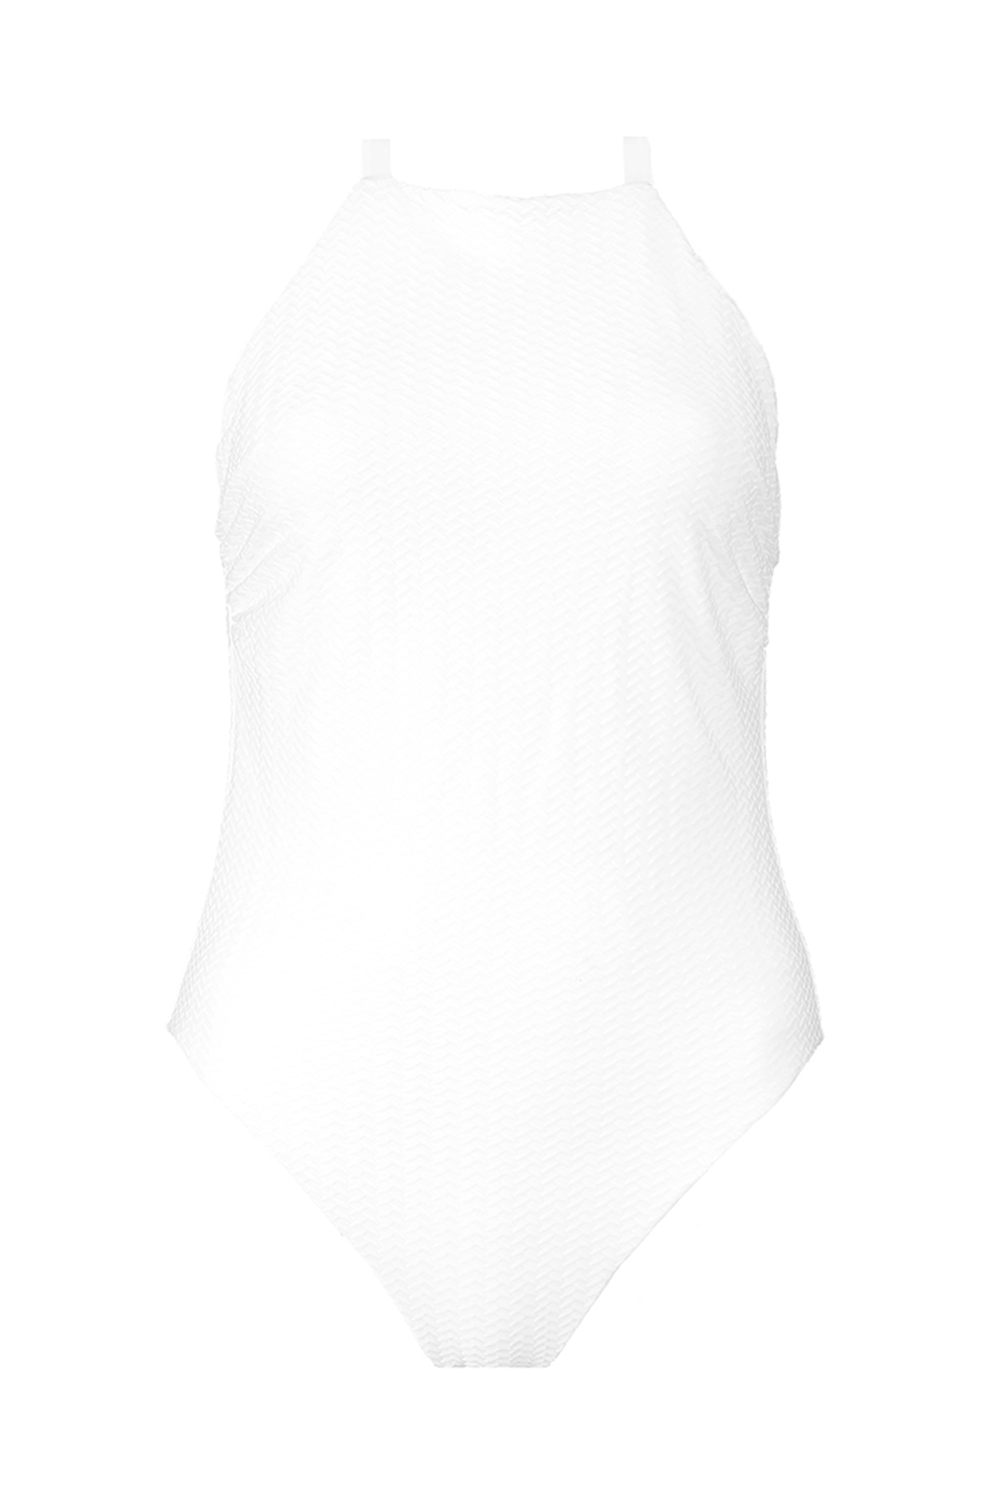 Textured White Reversible Classic One-Piece